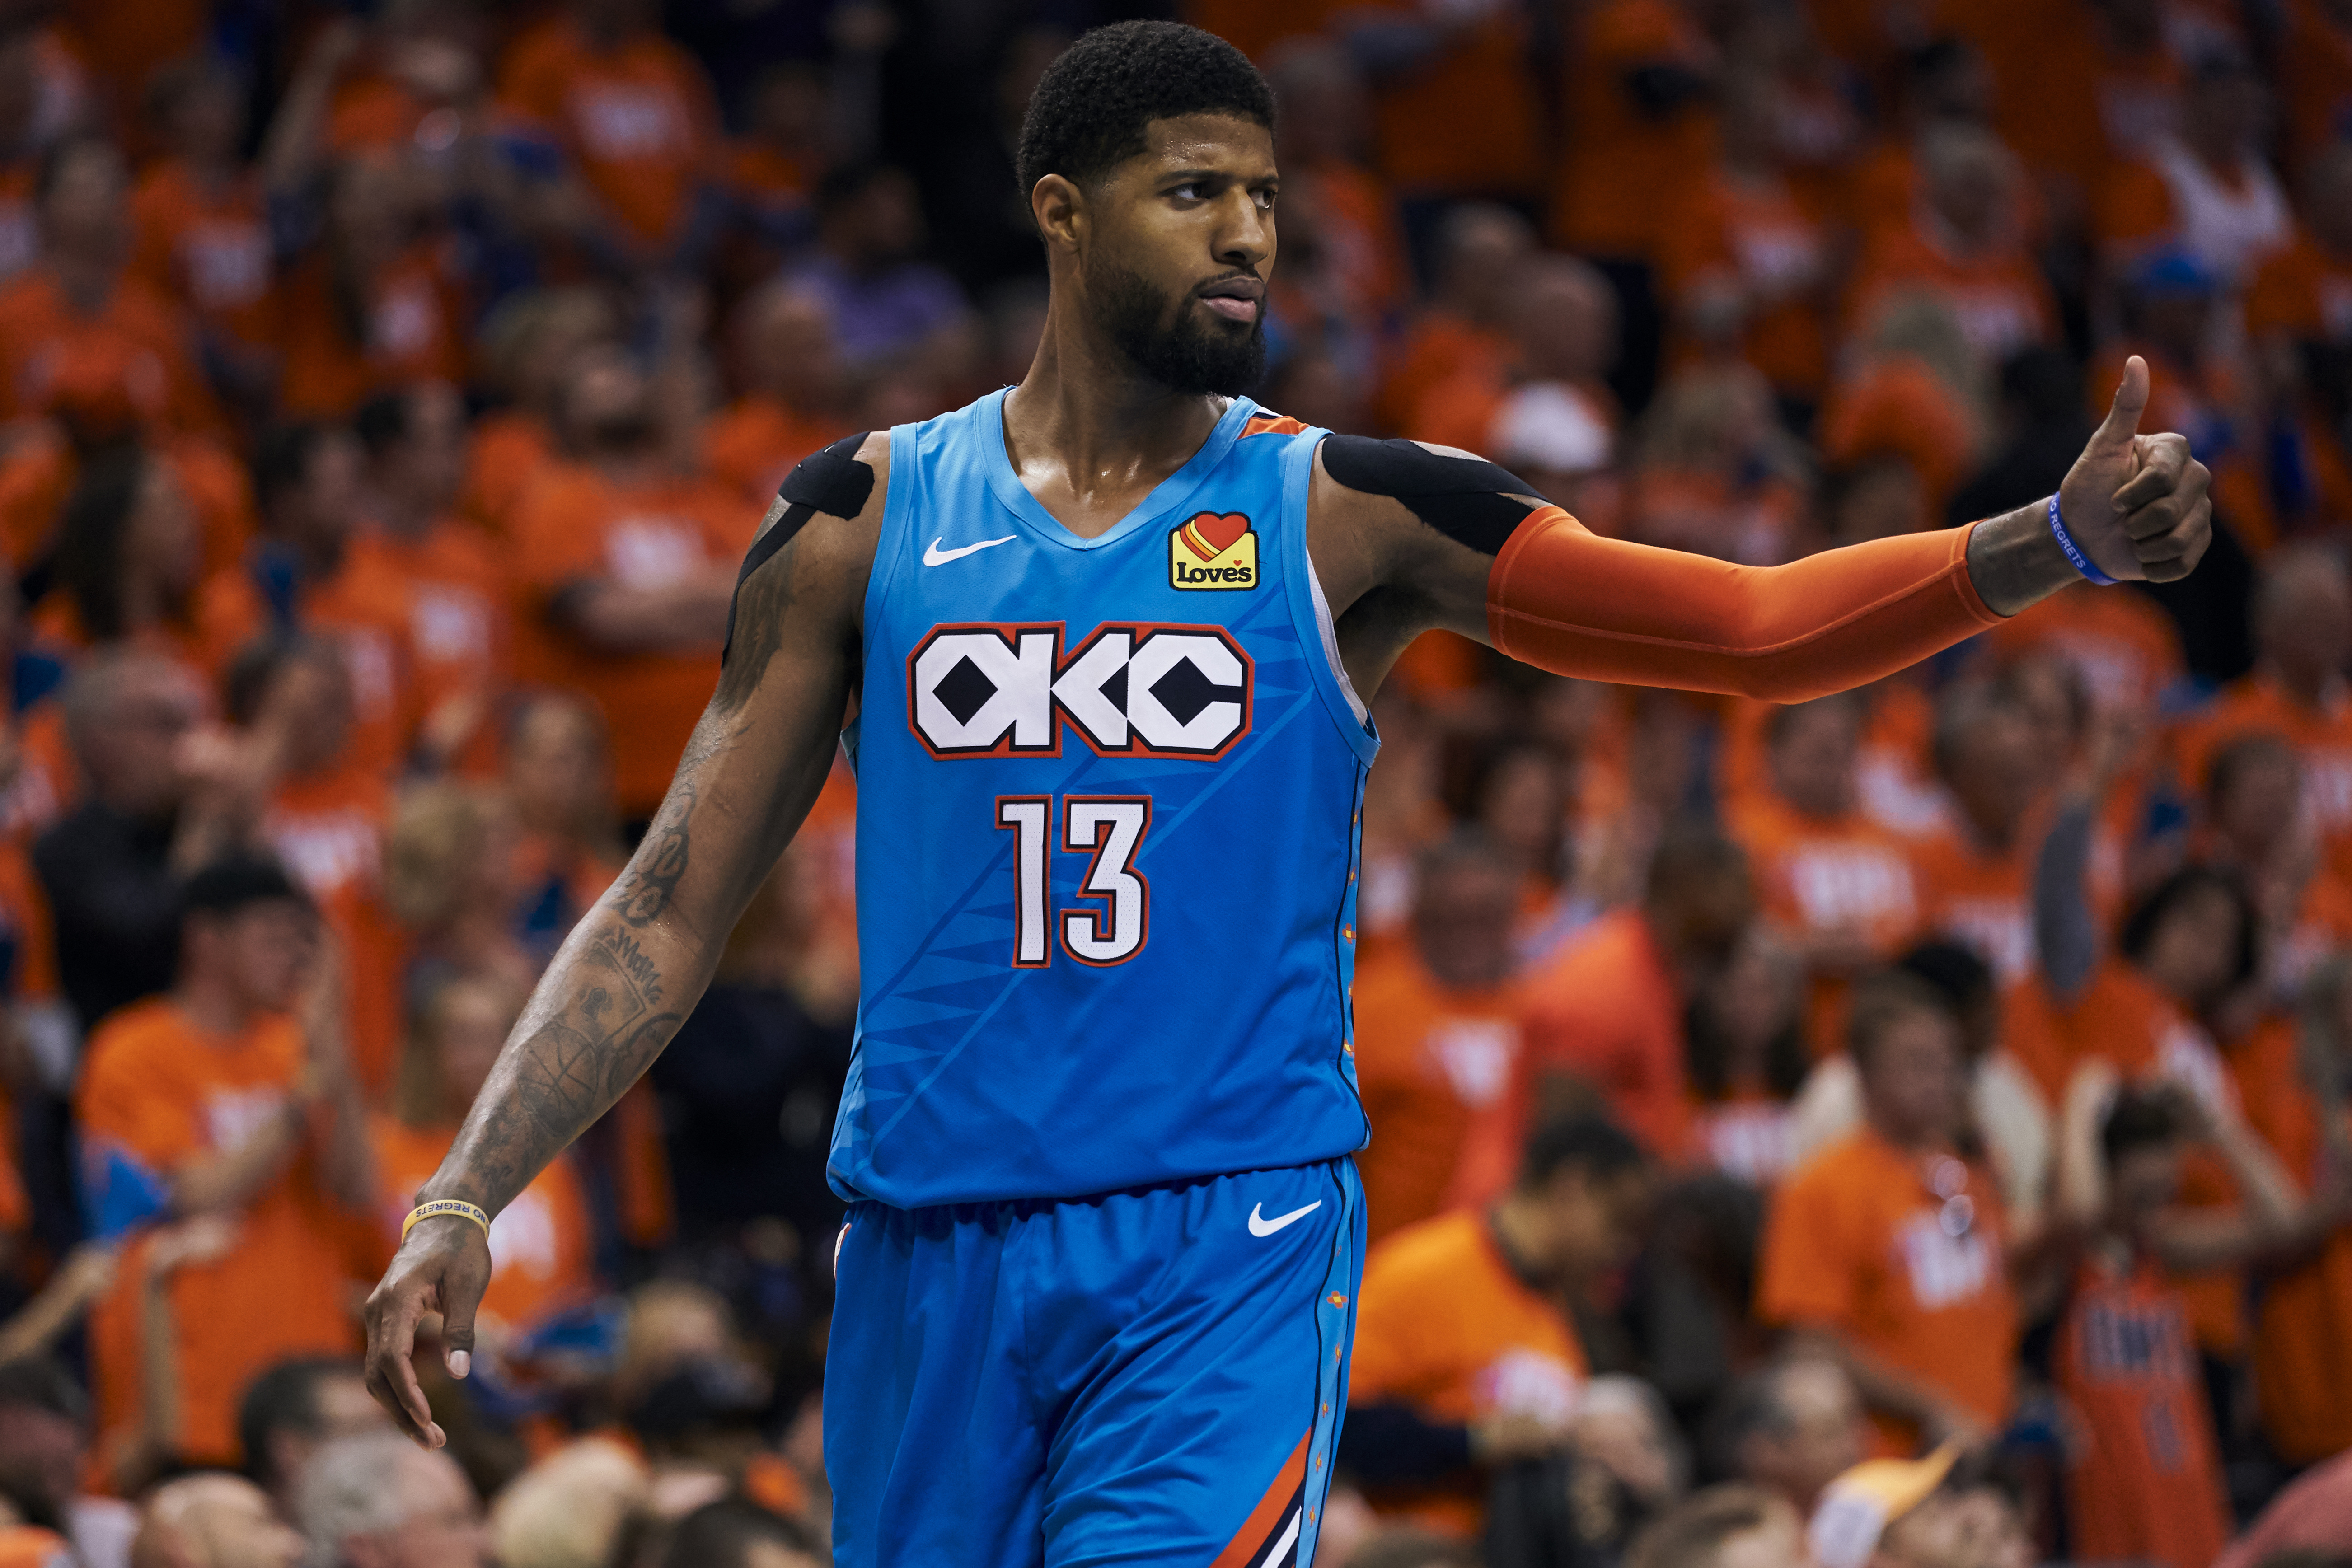 Paul George dunked at the buzzer up 12. Was it ethical?